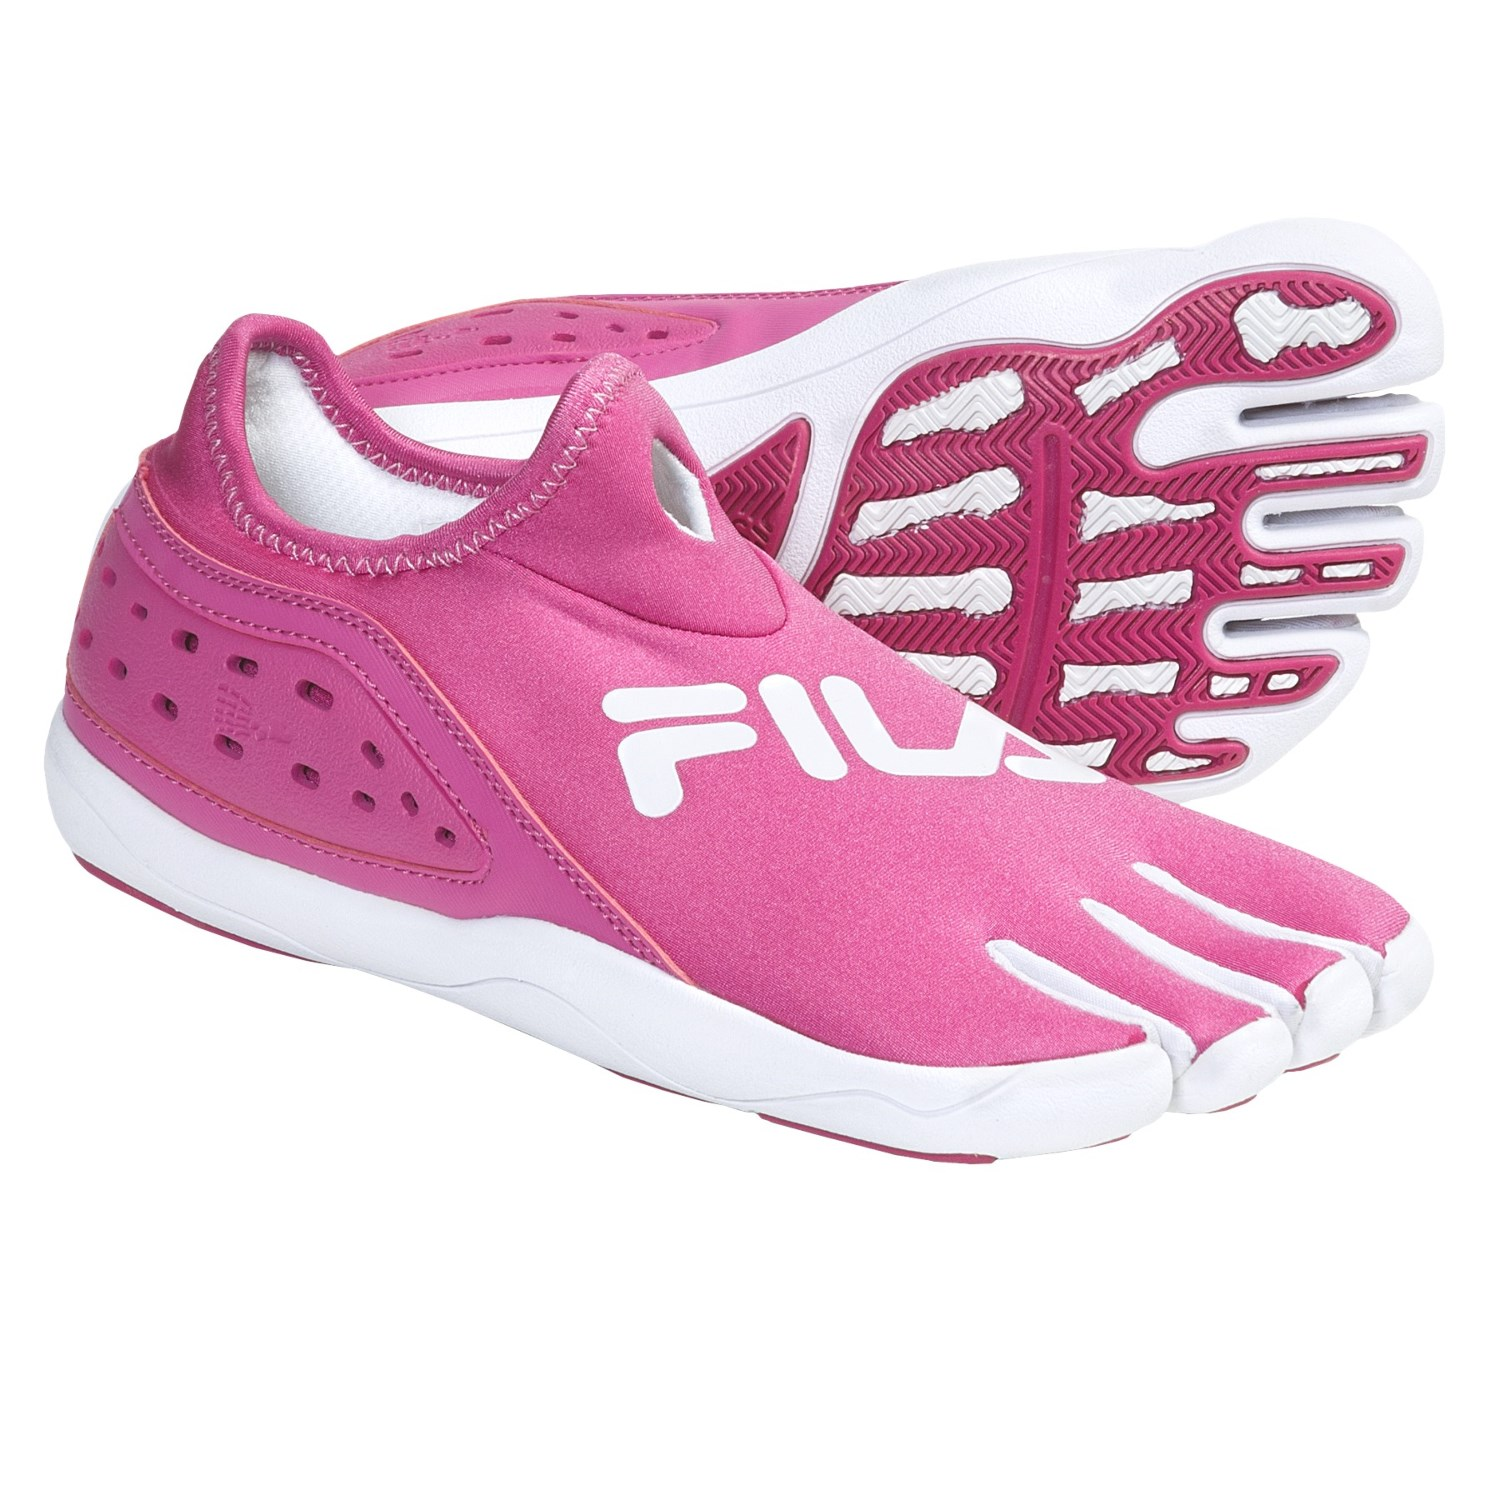 comFila Skele-Toes Trifit Water Shoes (For Women) - Save 30